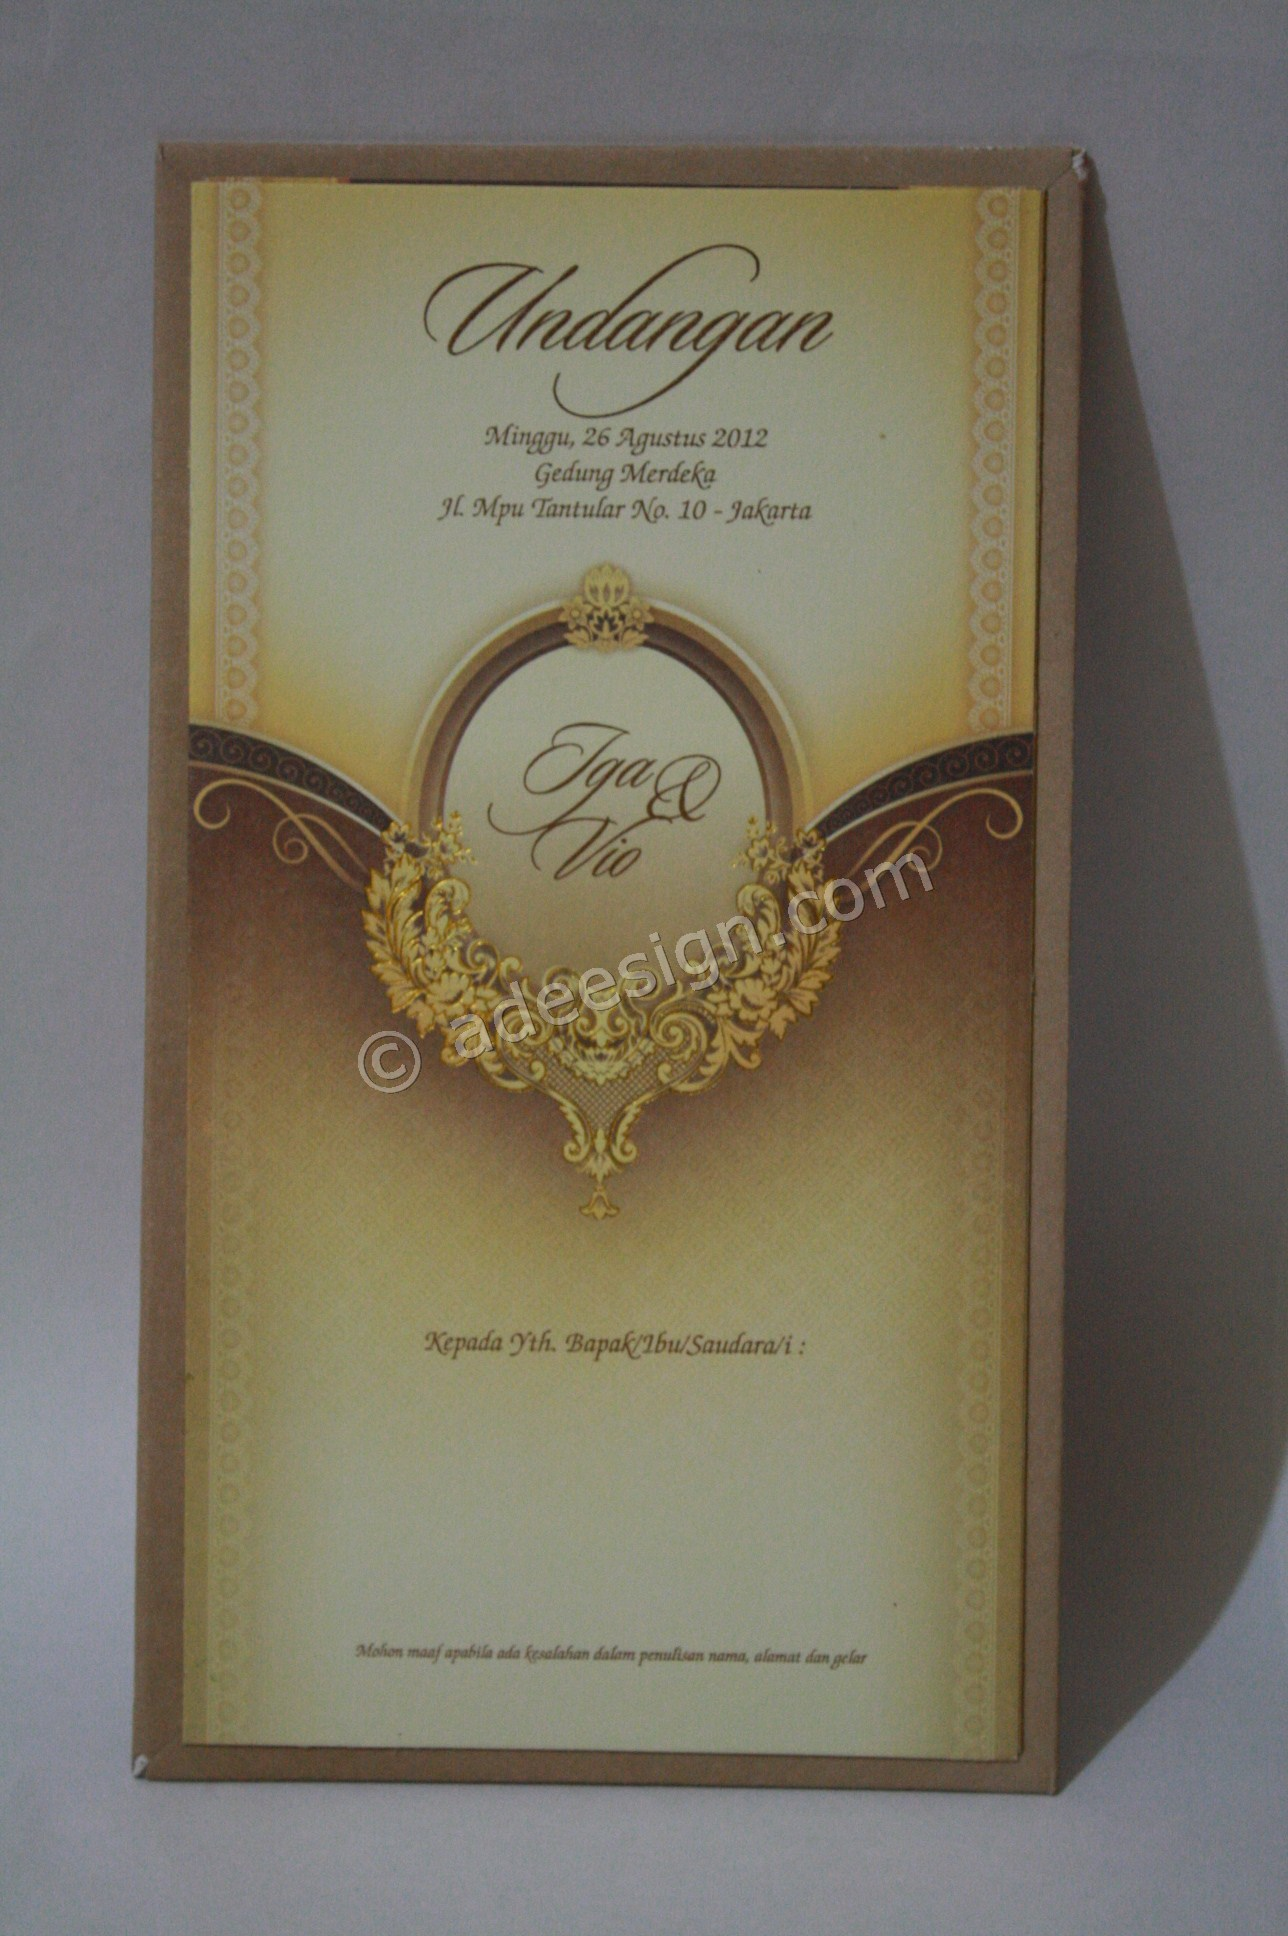 Kartu Undangan Pernikahan Semi Hard Cover Iga dan Vio 1 - Percetakan Wedding Invitations Simple dan Elegan di Sawunggaling